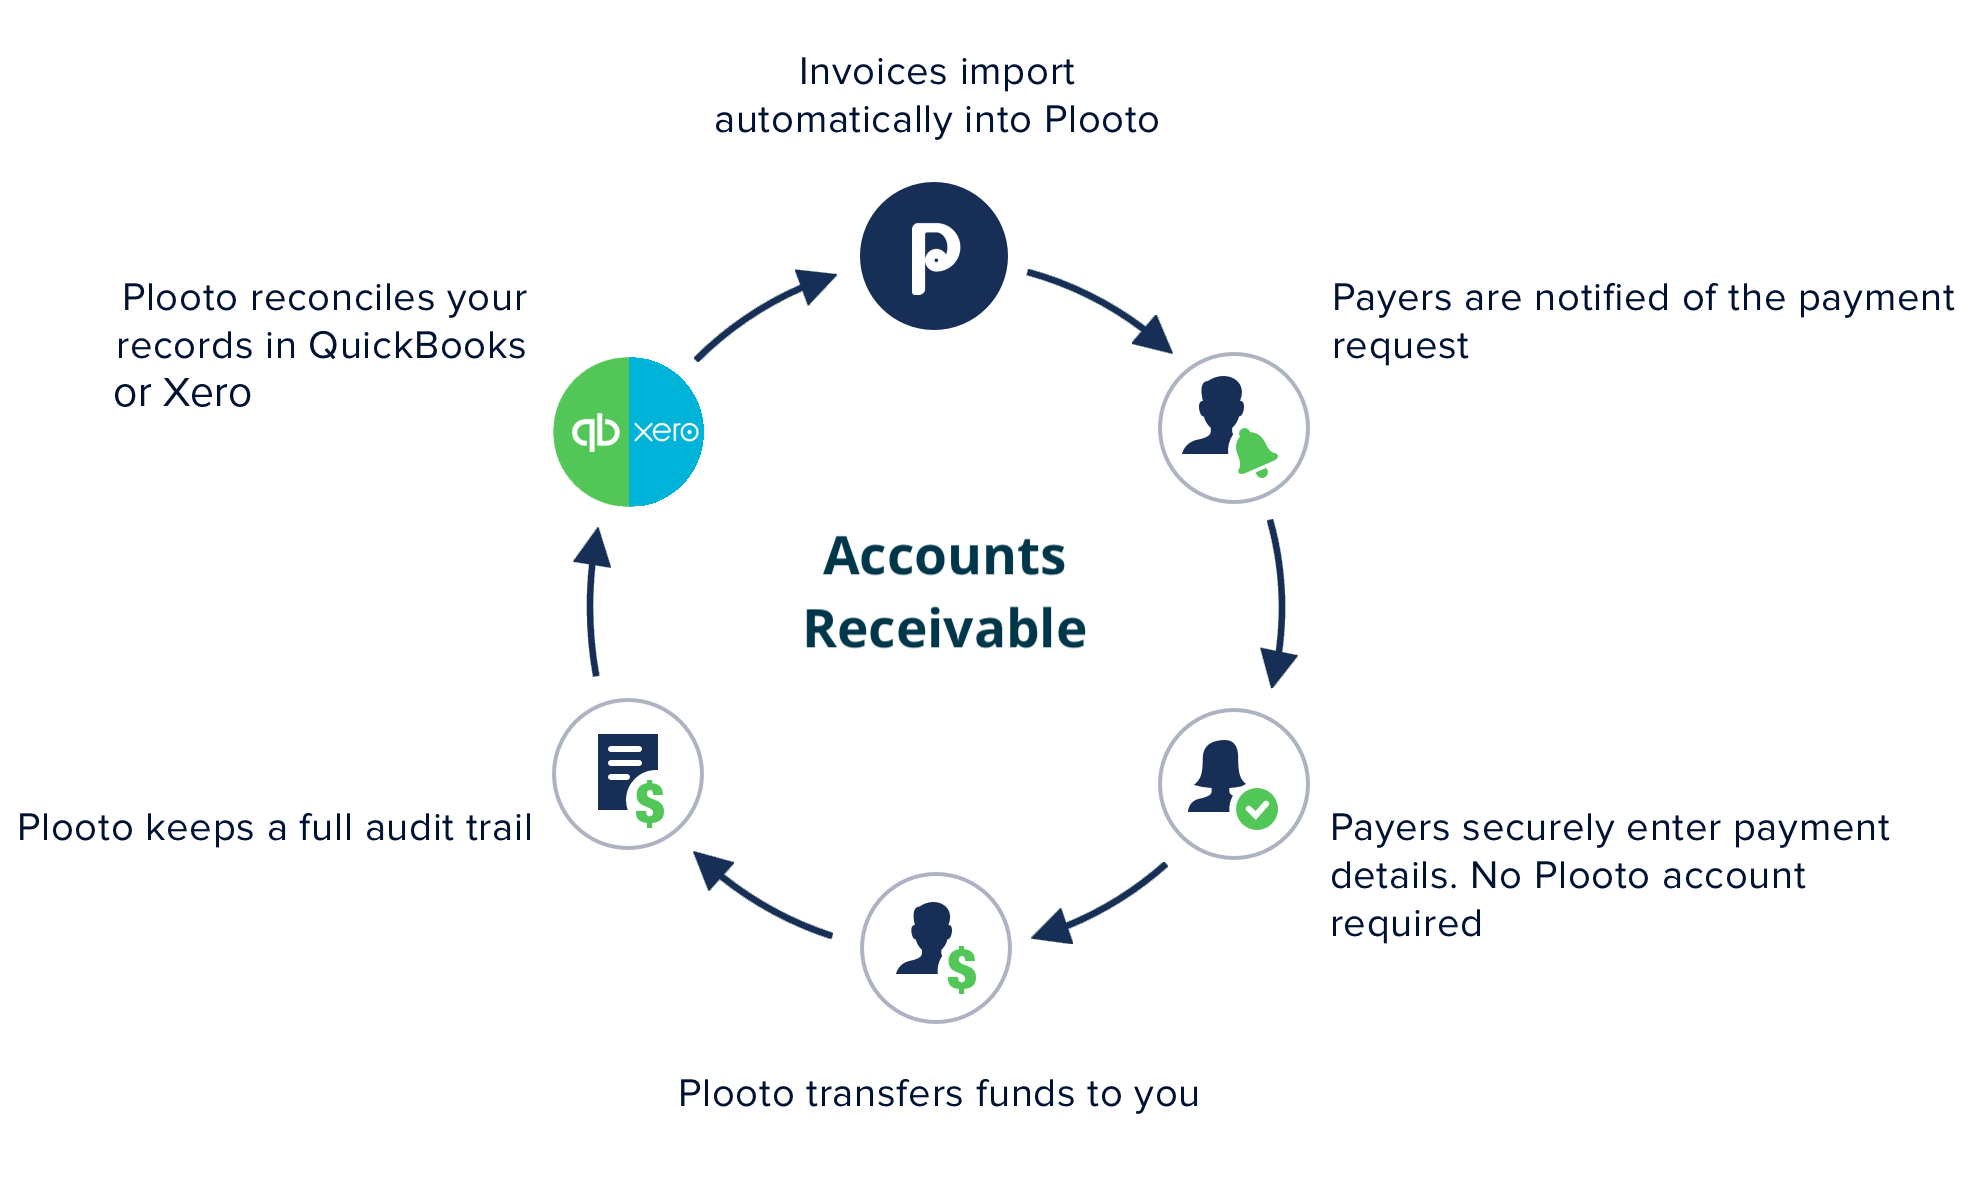 Plooto Integration | With Plooto's two-way sync with QuickBooks and Xero, automate accounting receivable processes